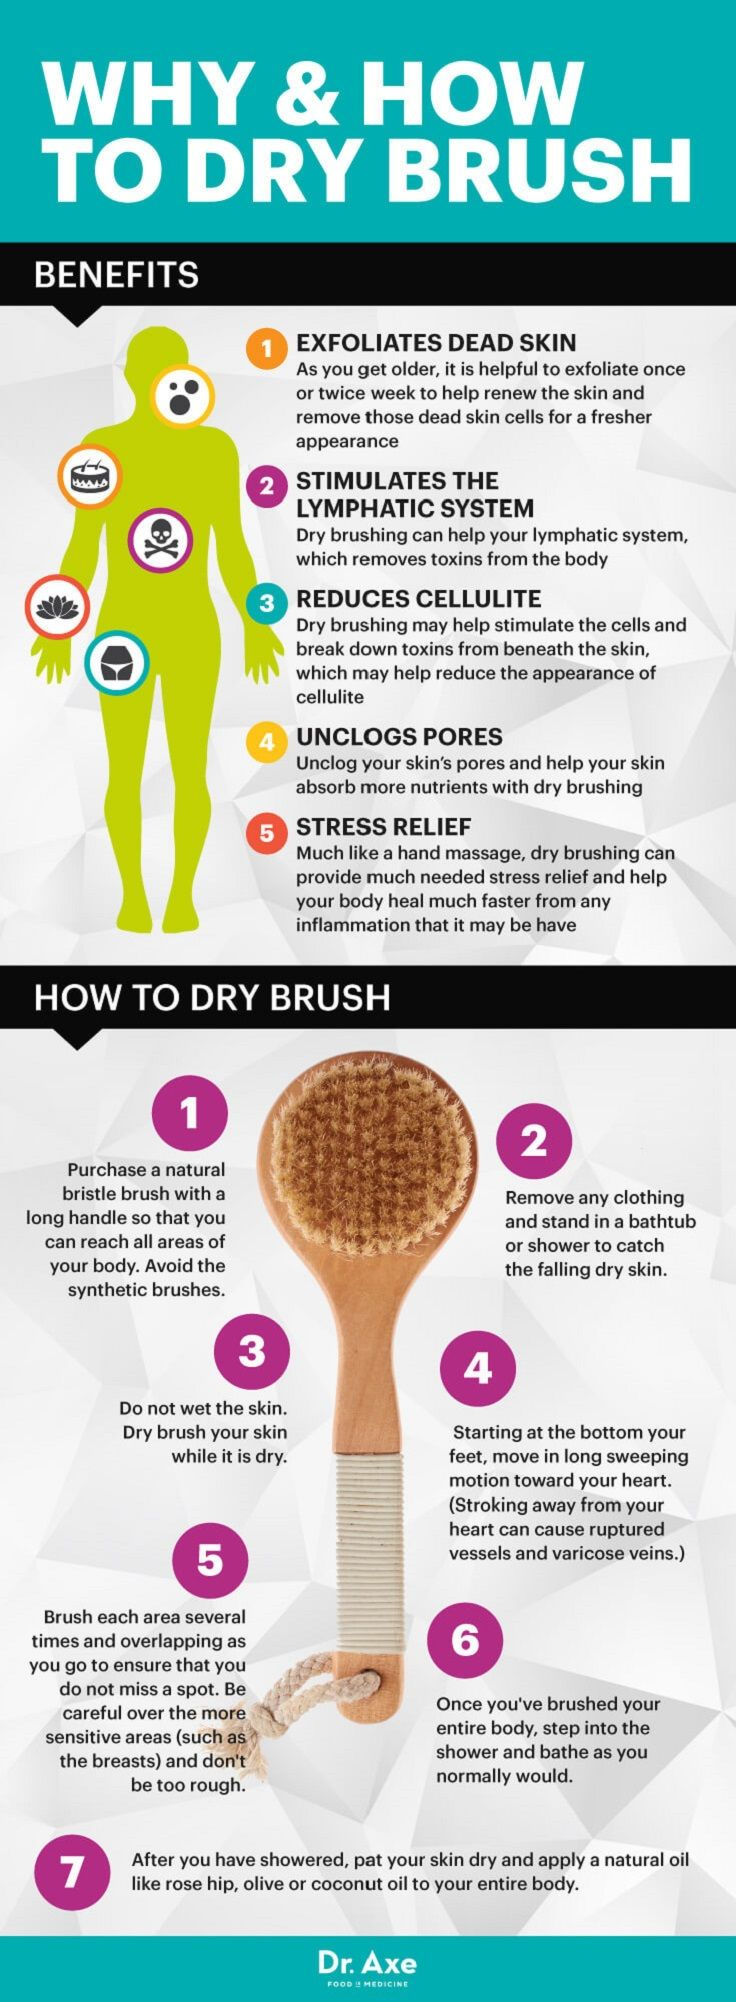 How and Why to Dry Brush - 11 Effective Dry Skin Tips, Tricks and Remedies